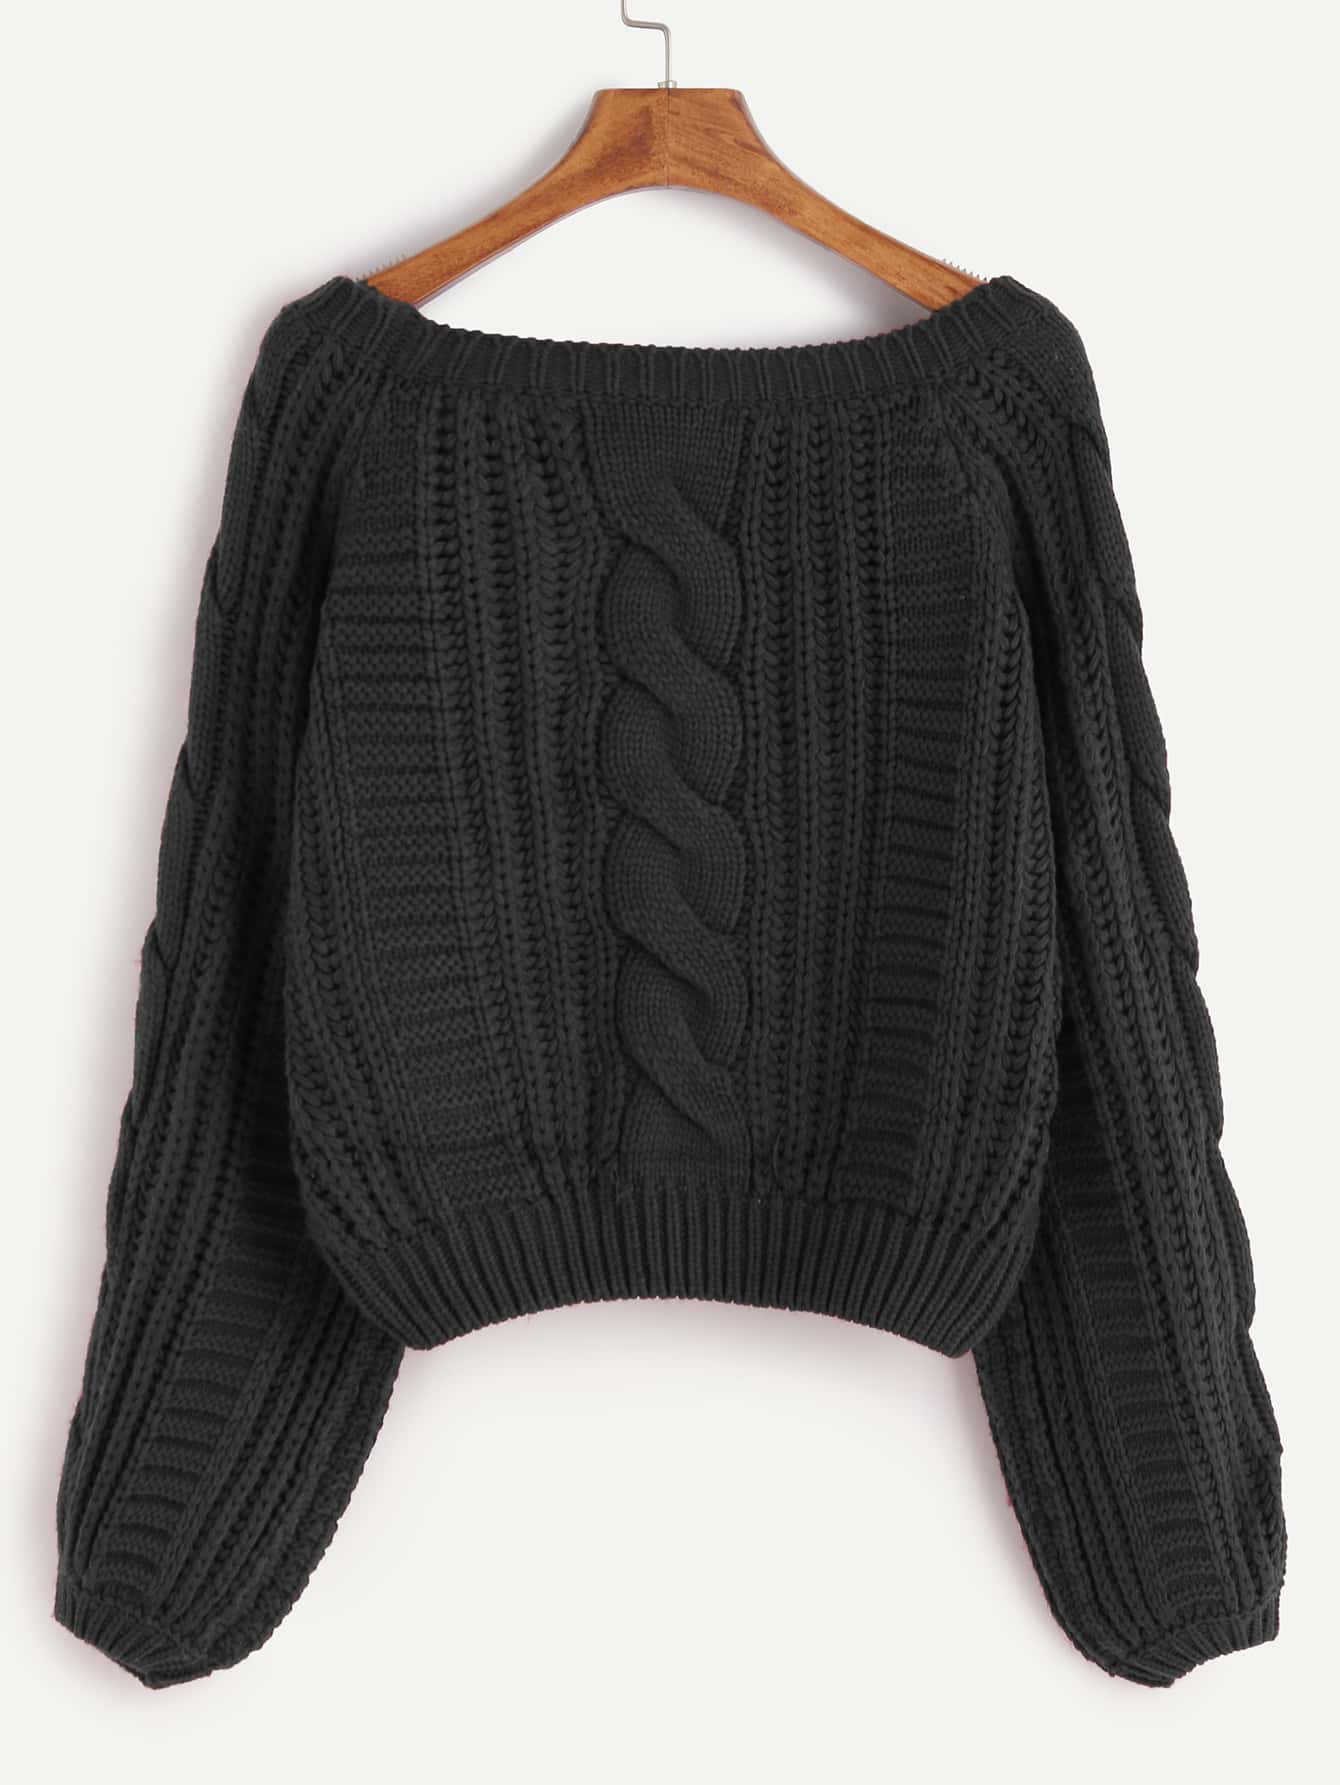 Black Raglan Sleeve Cable Knit Sweater -SheIn(Sheinside)